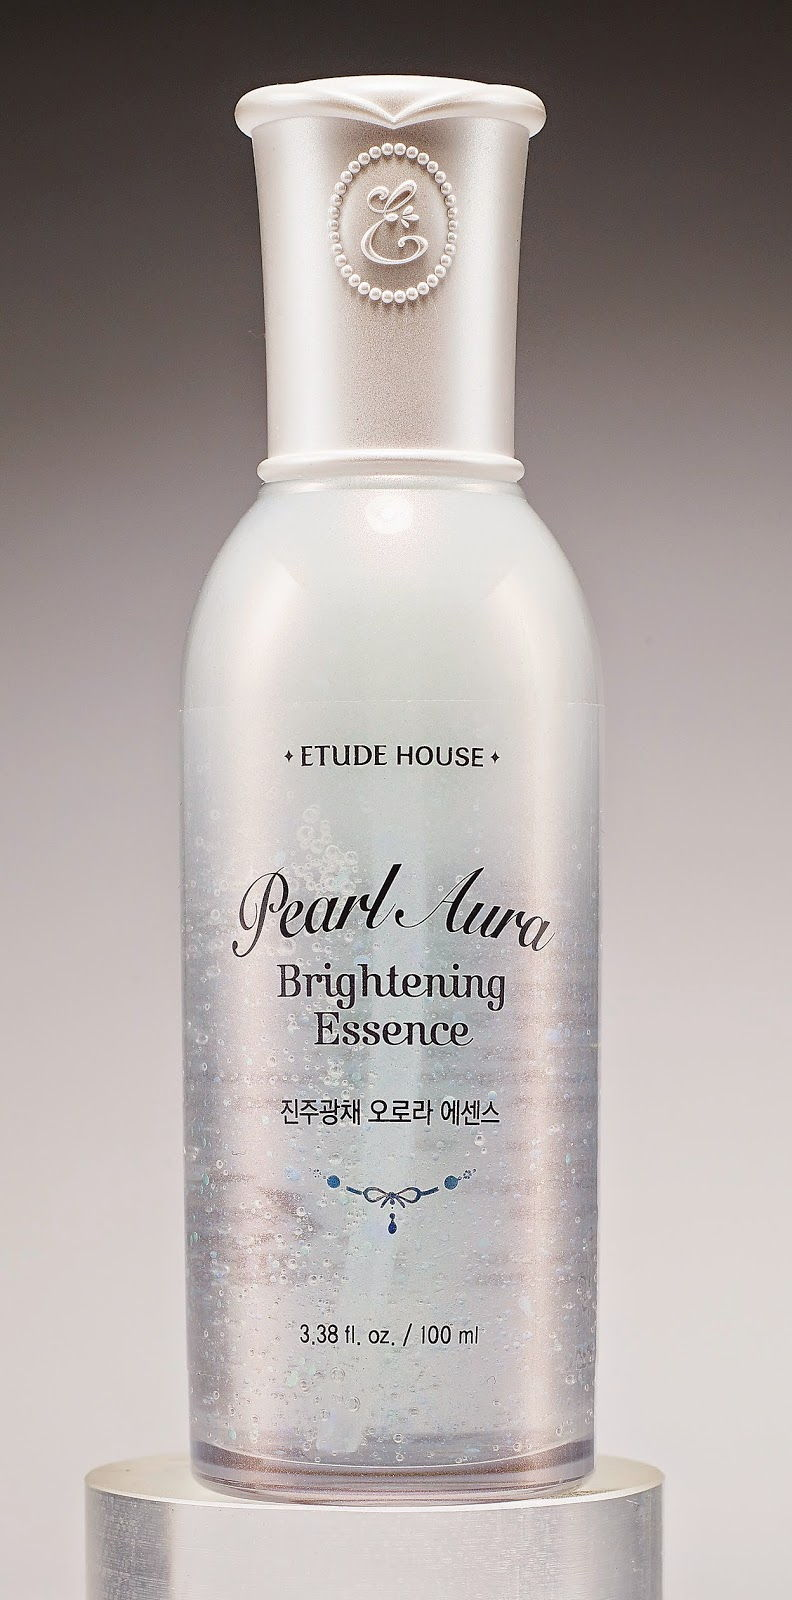 Etude House Pearl Aura Brightening serum